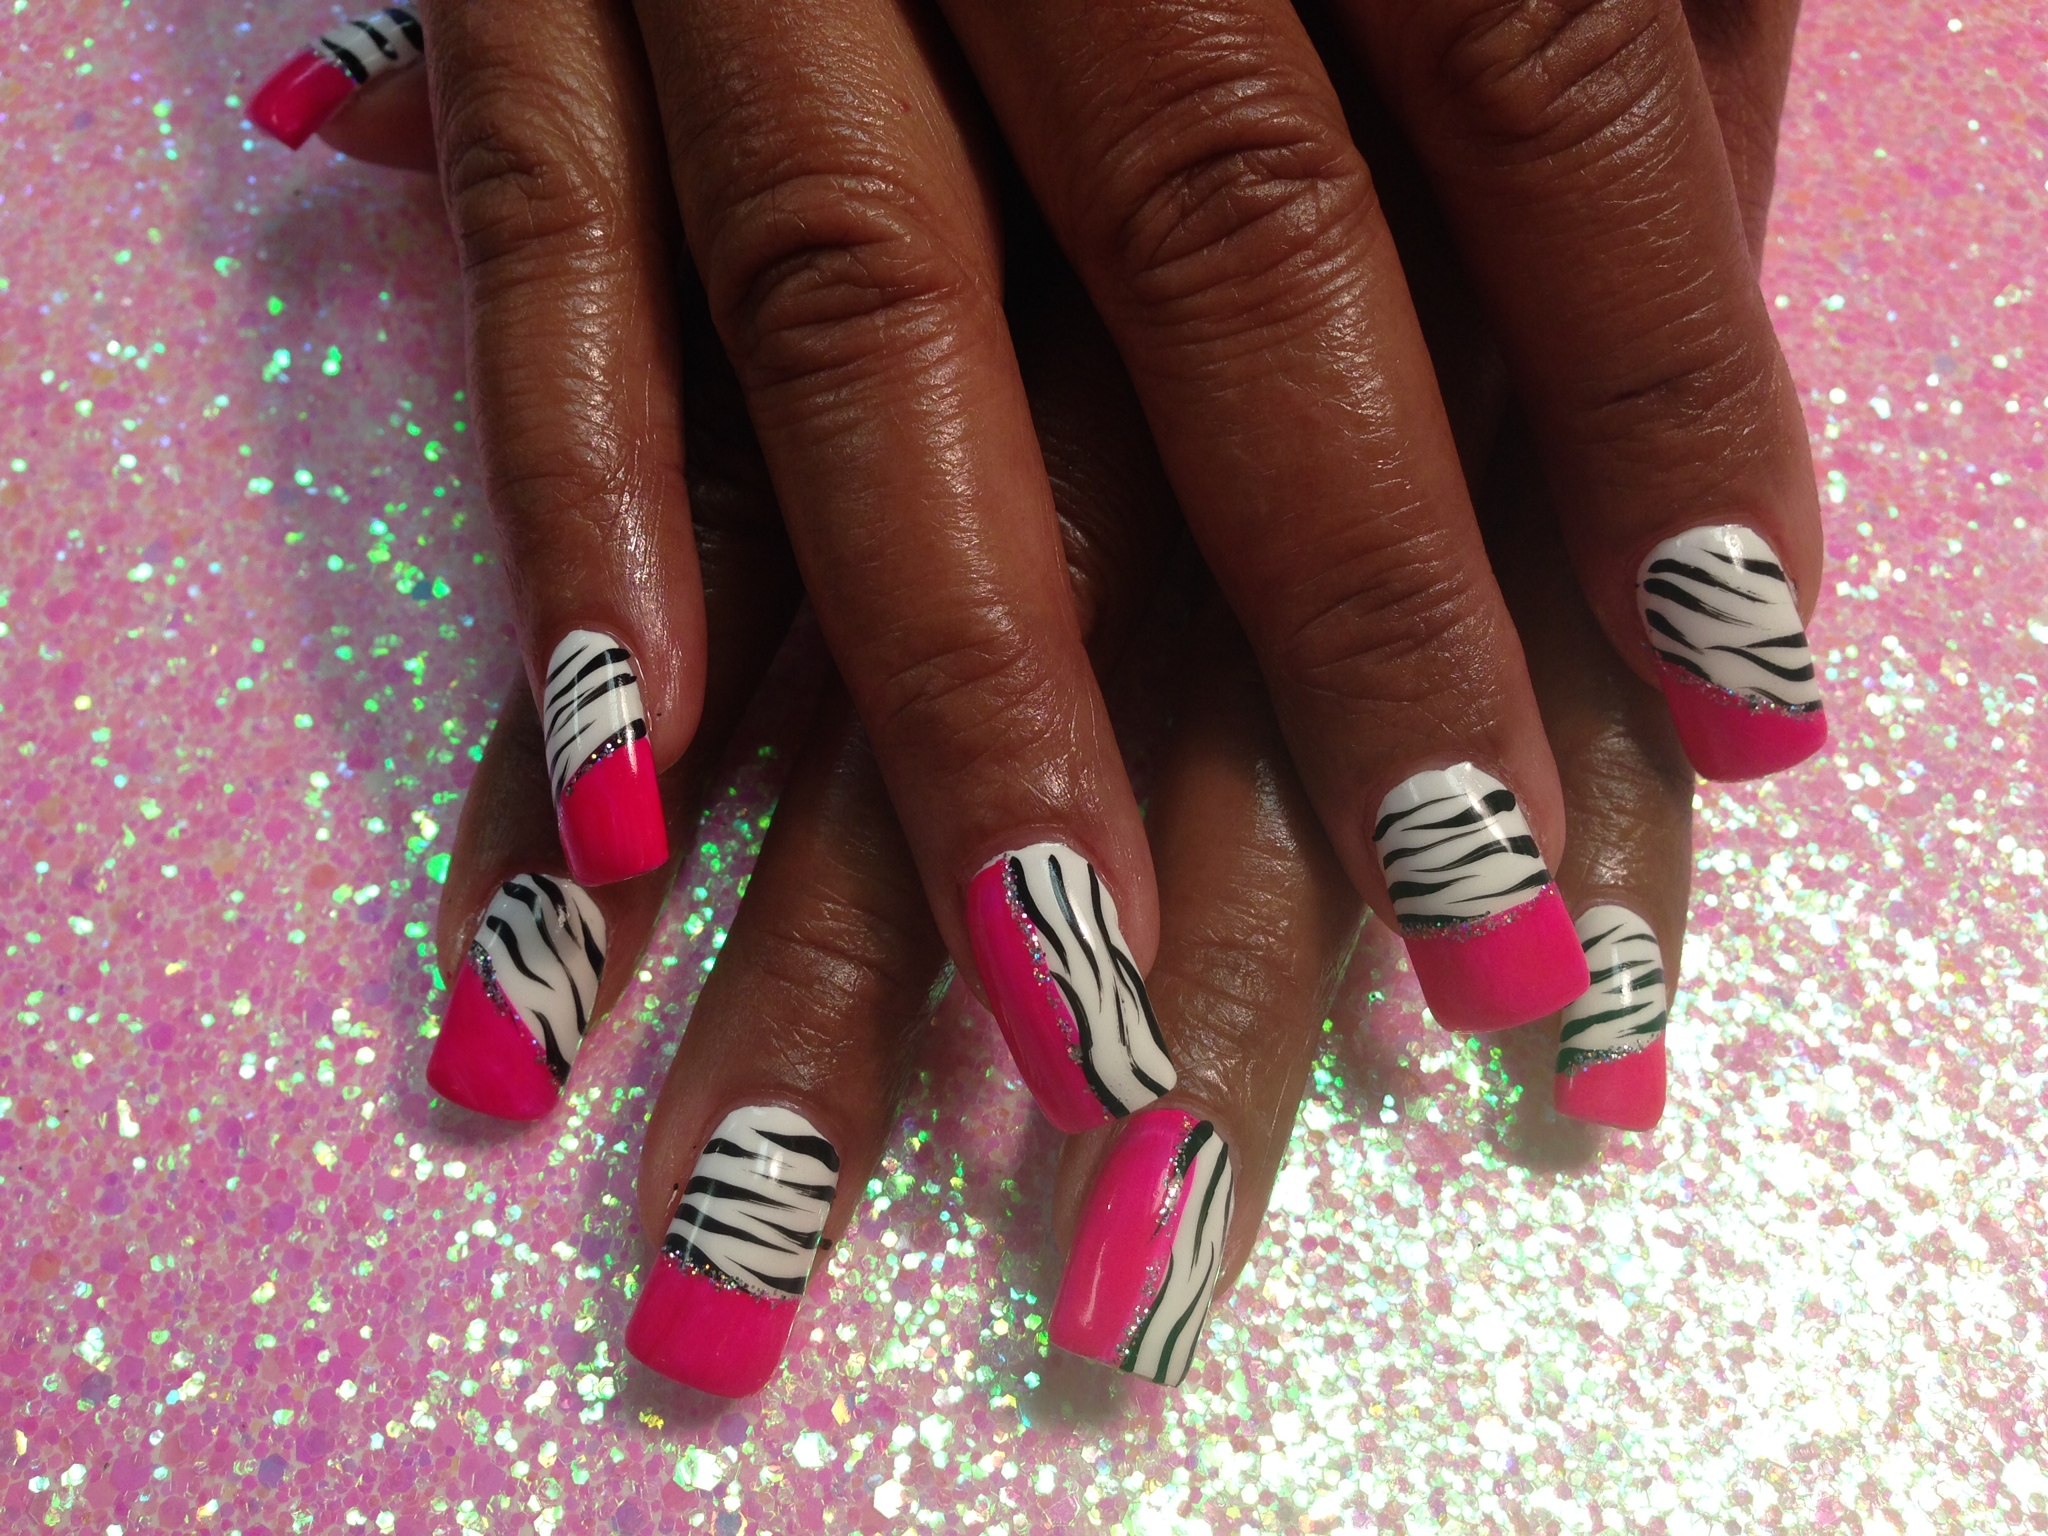 Pink White Tiger, nail art designs by Top Nails, Clarksville TN ...